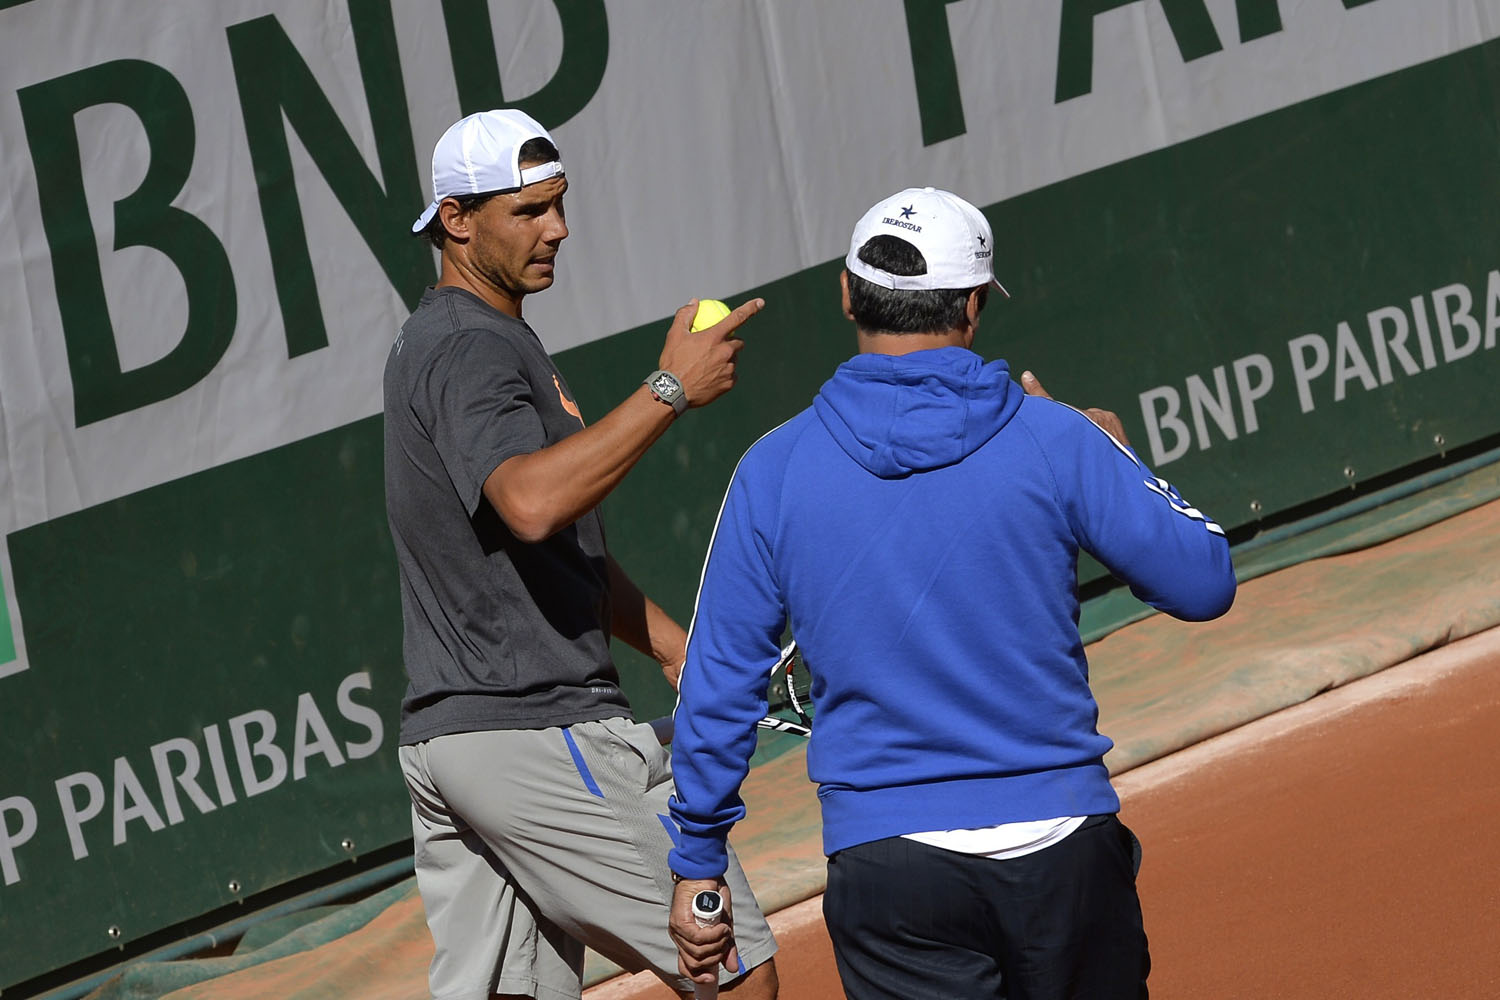 Spain's Rafael Nadal (L) speaks with his trainer during a training session at the Roland Garros stadium in Paris on May 22, 2014, ahead of the 2014 French Open.